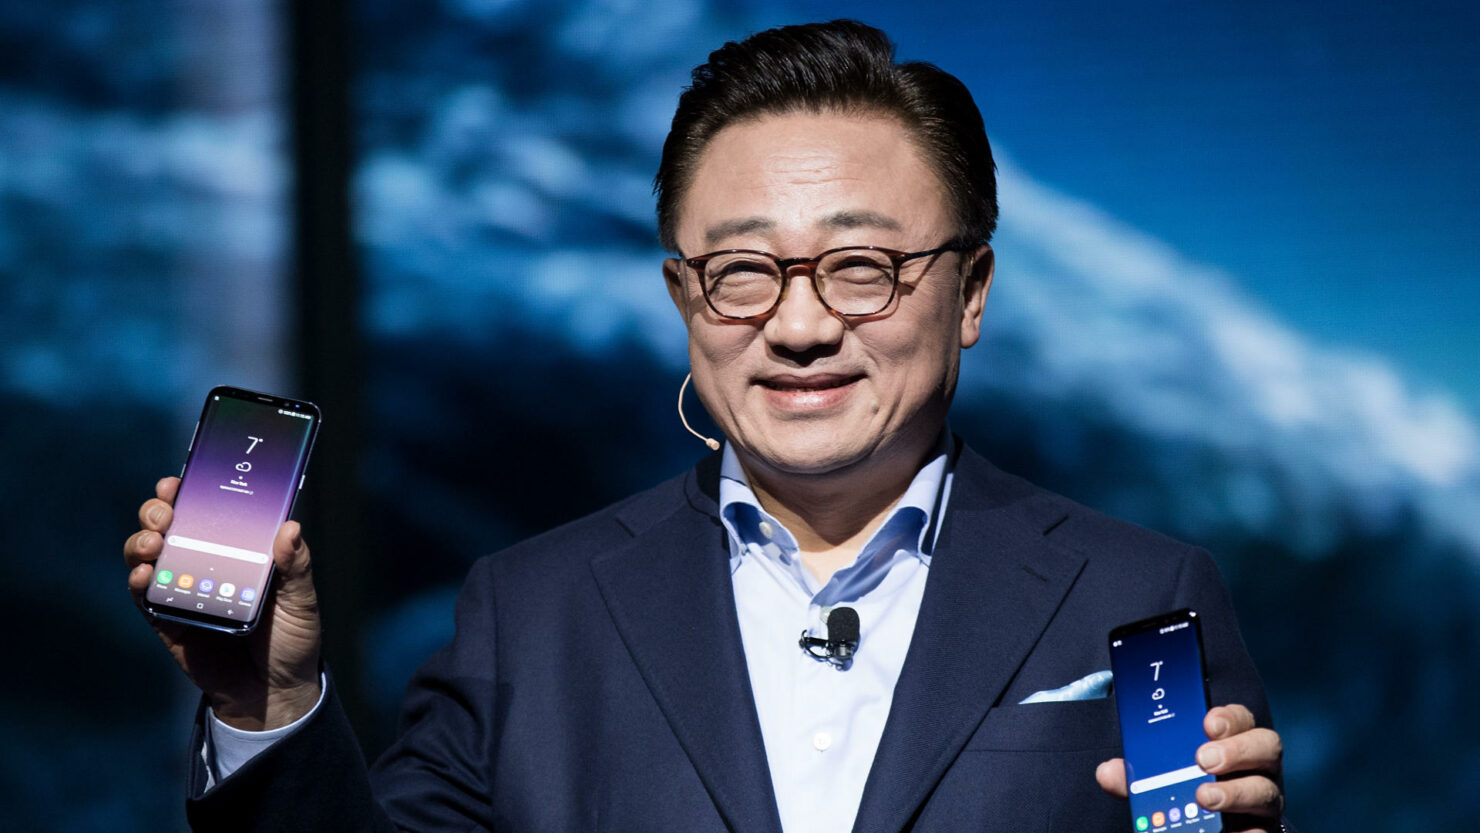 Samsung foldable devices maintain number one spot